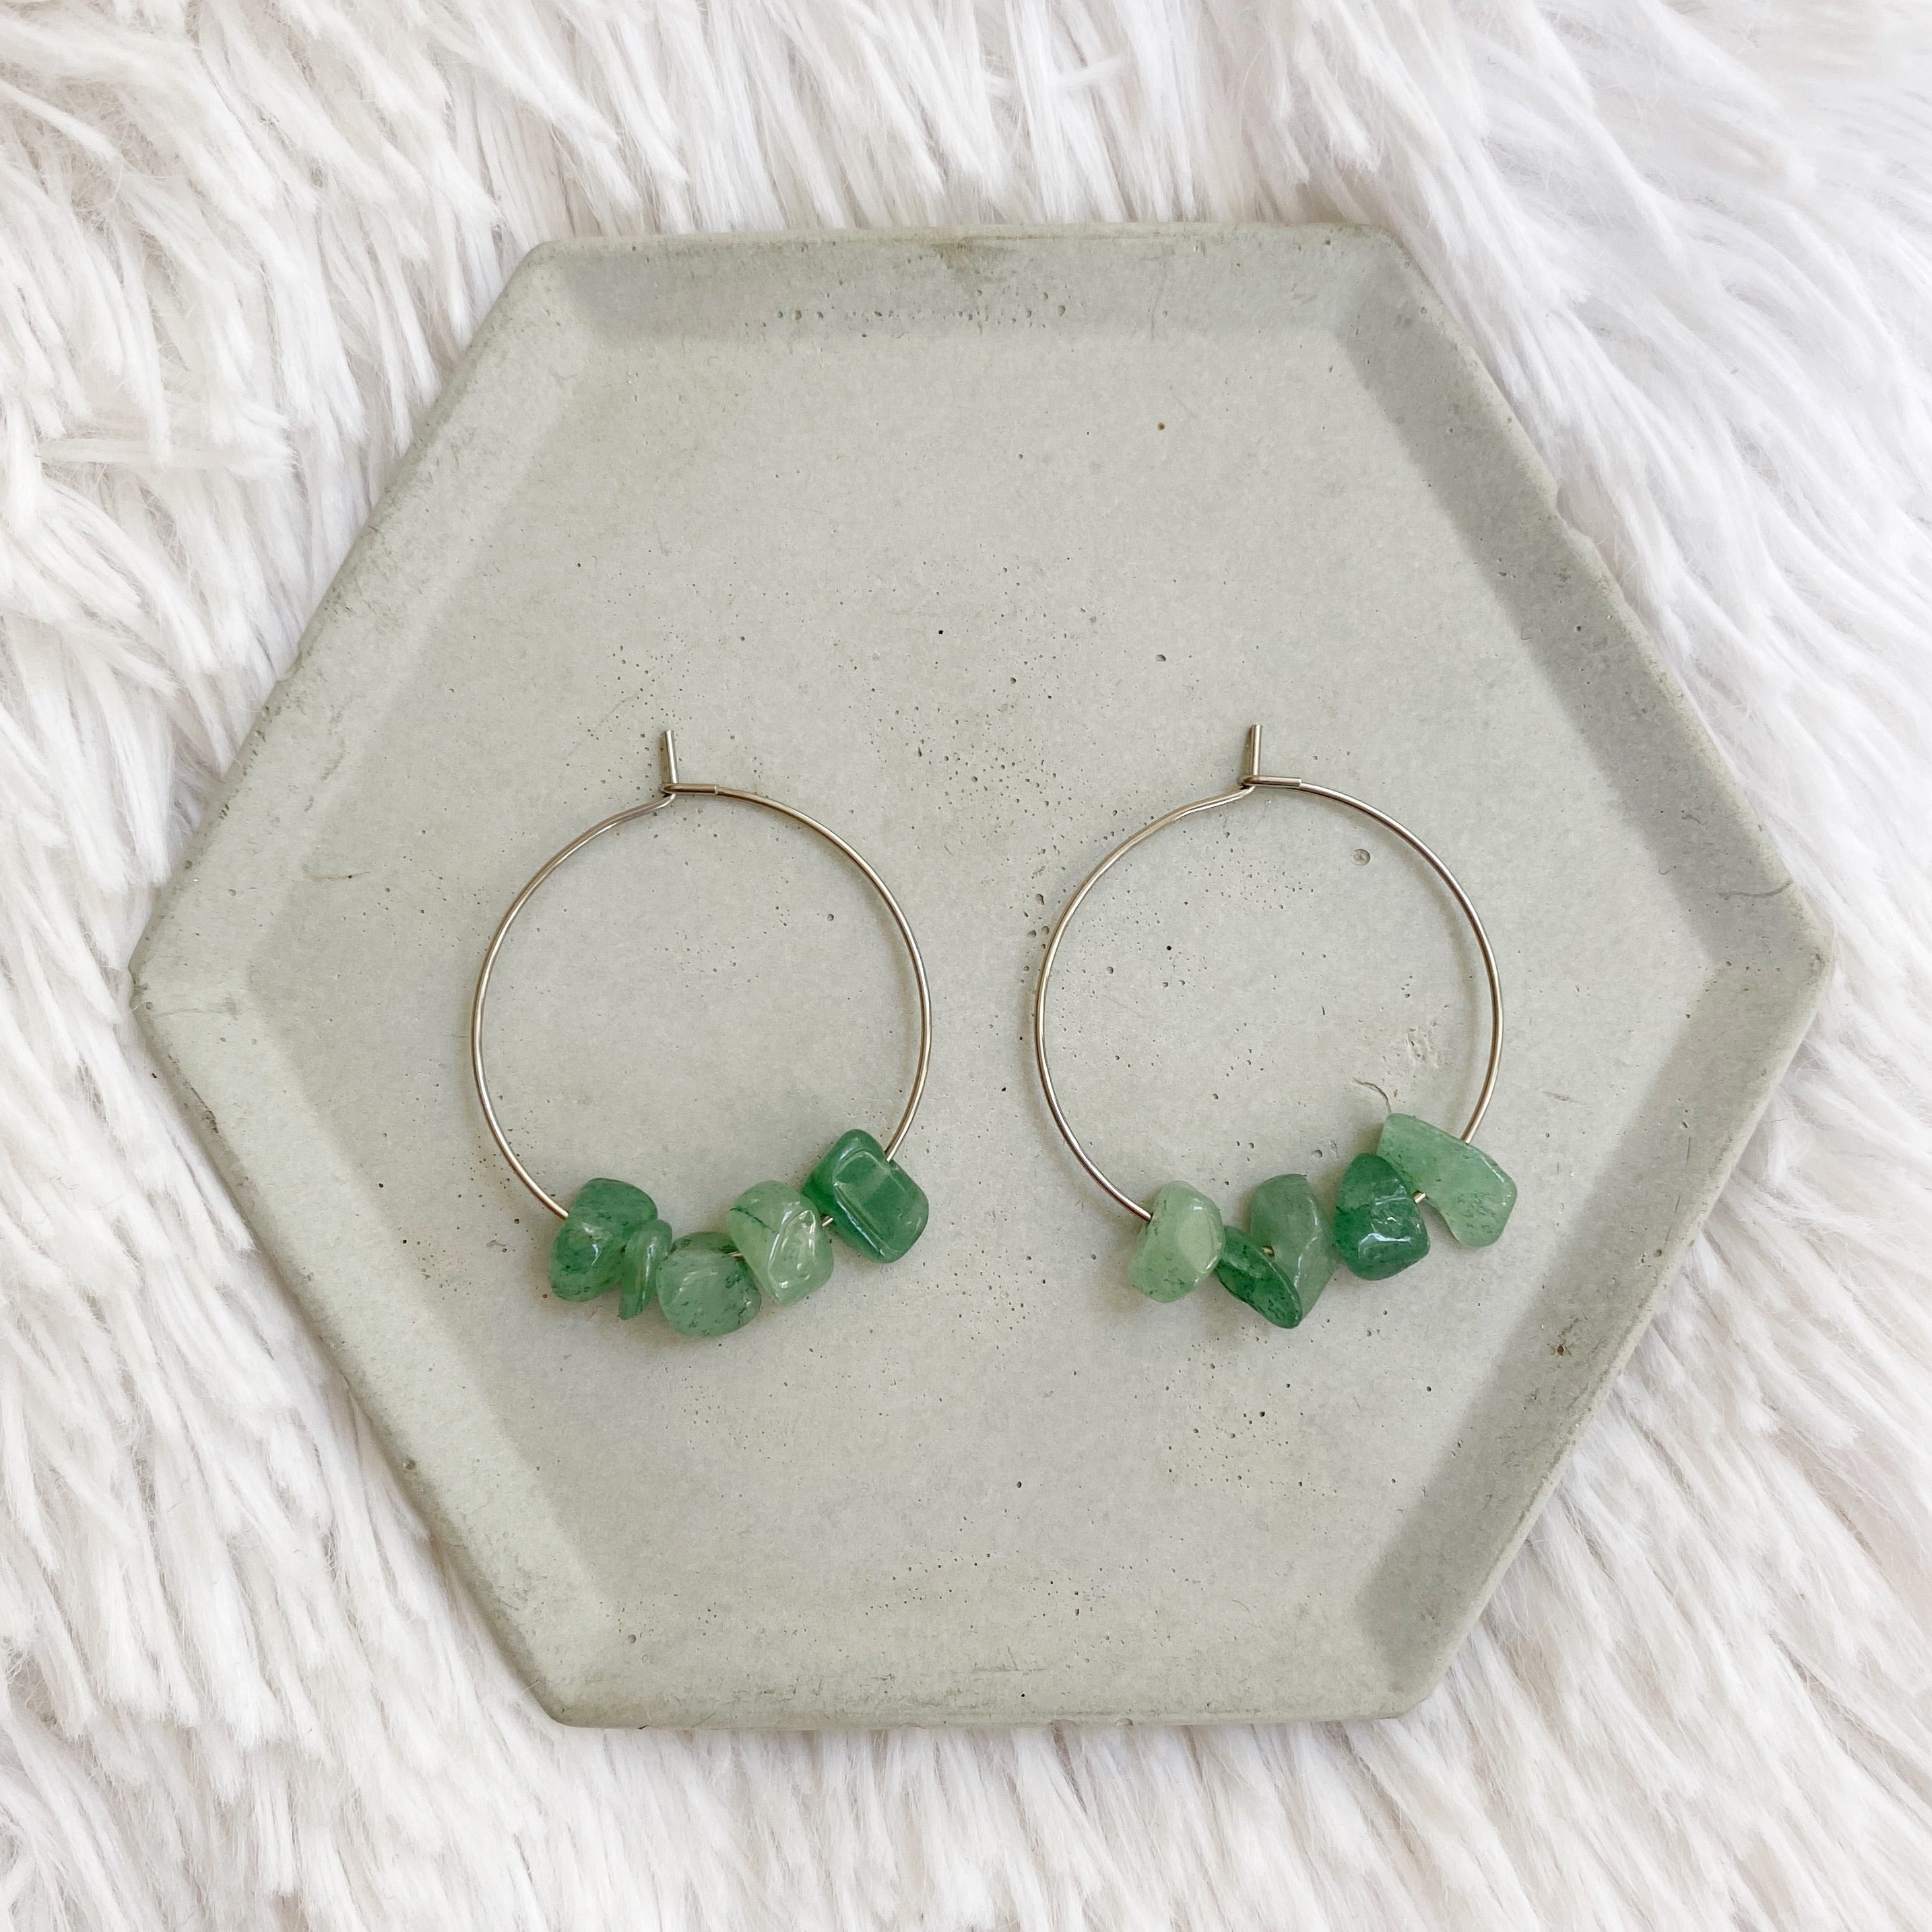 Stone Hoop Earrings - Green Aventurine